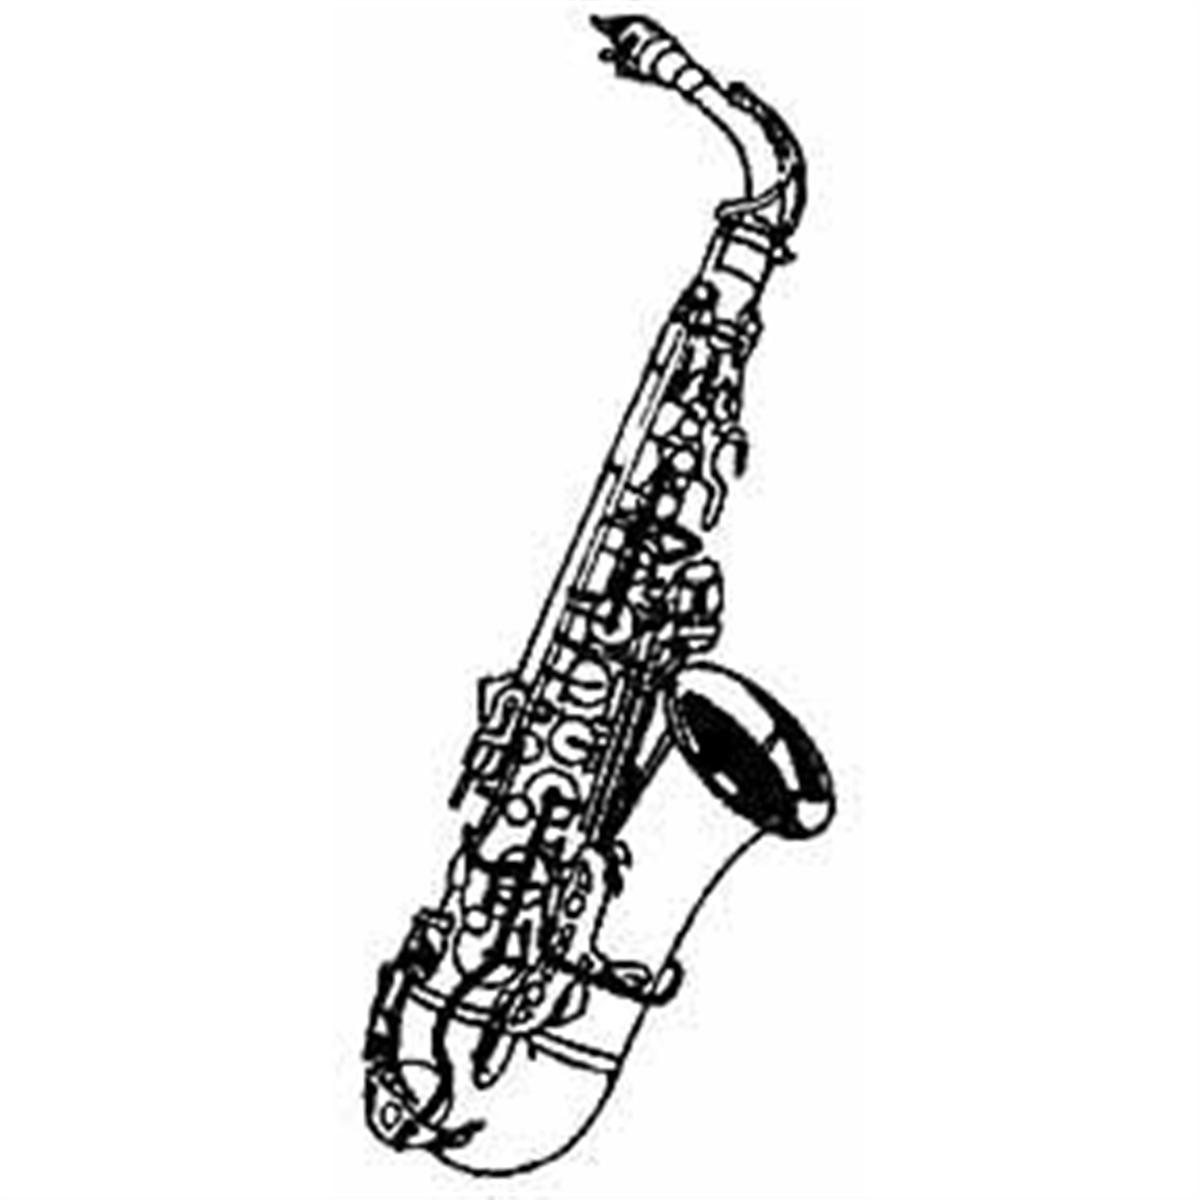 alto saxophone silhouette at getdrawings com free for personal use rh getdrawings com saxophone clipart black and white saxophone clipart free